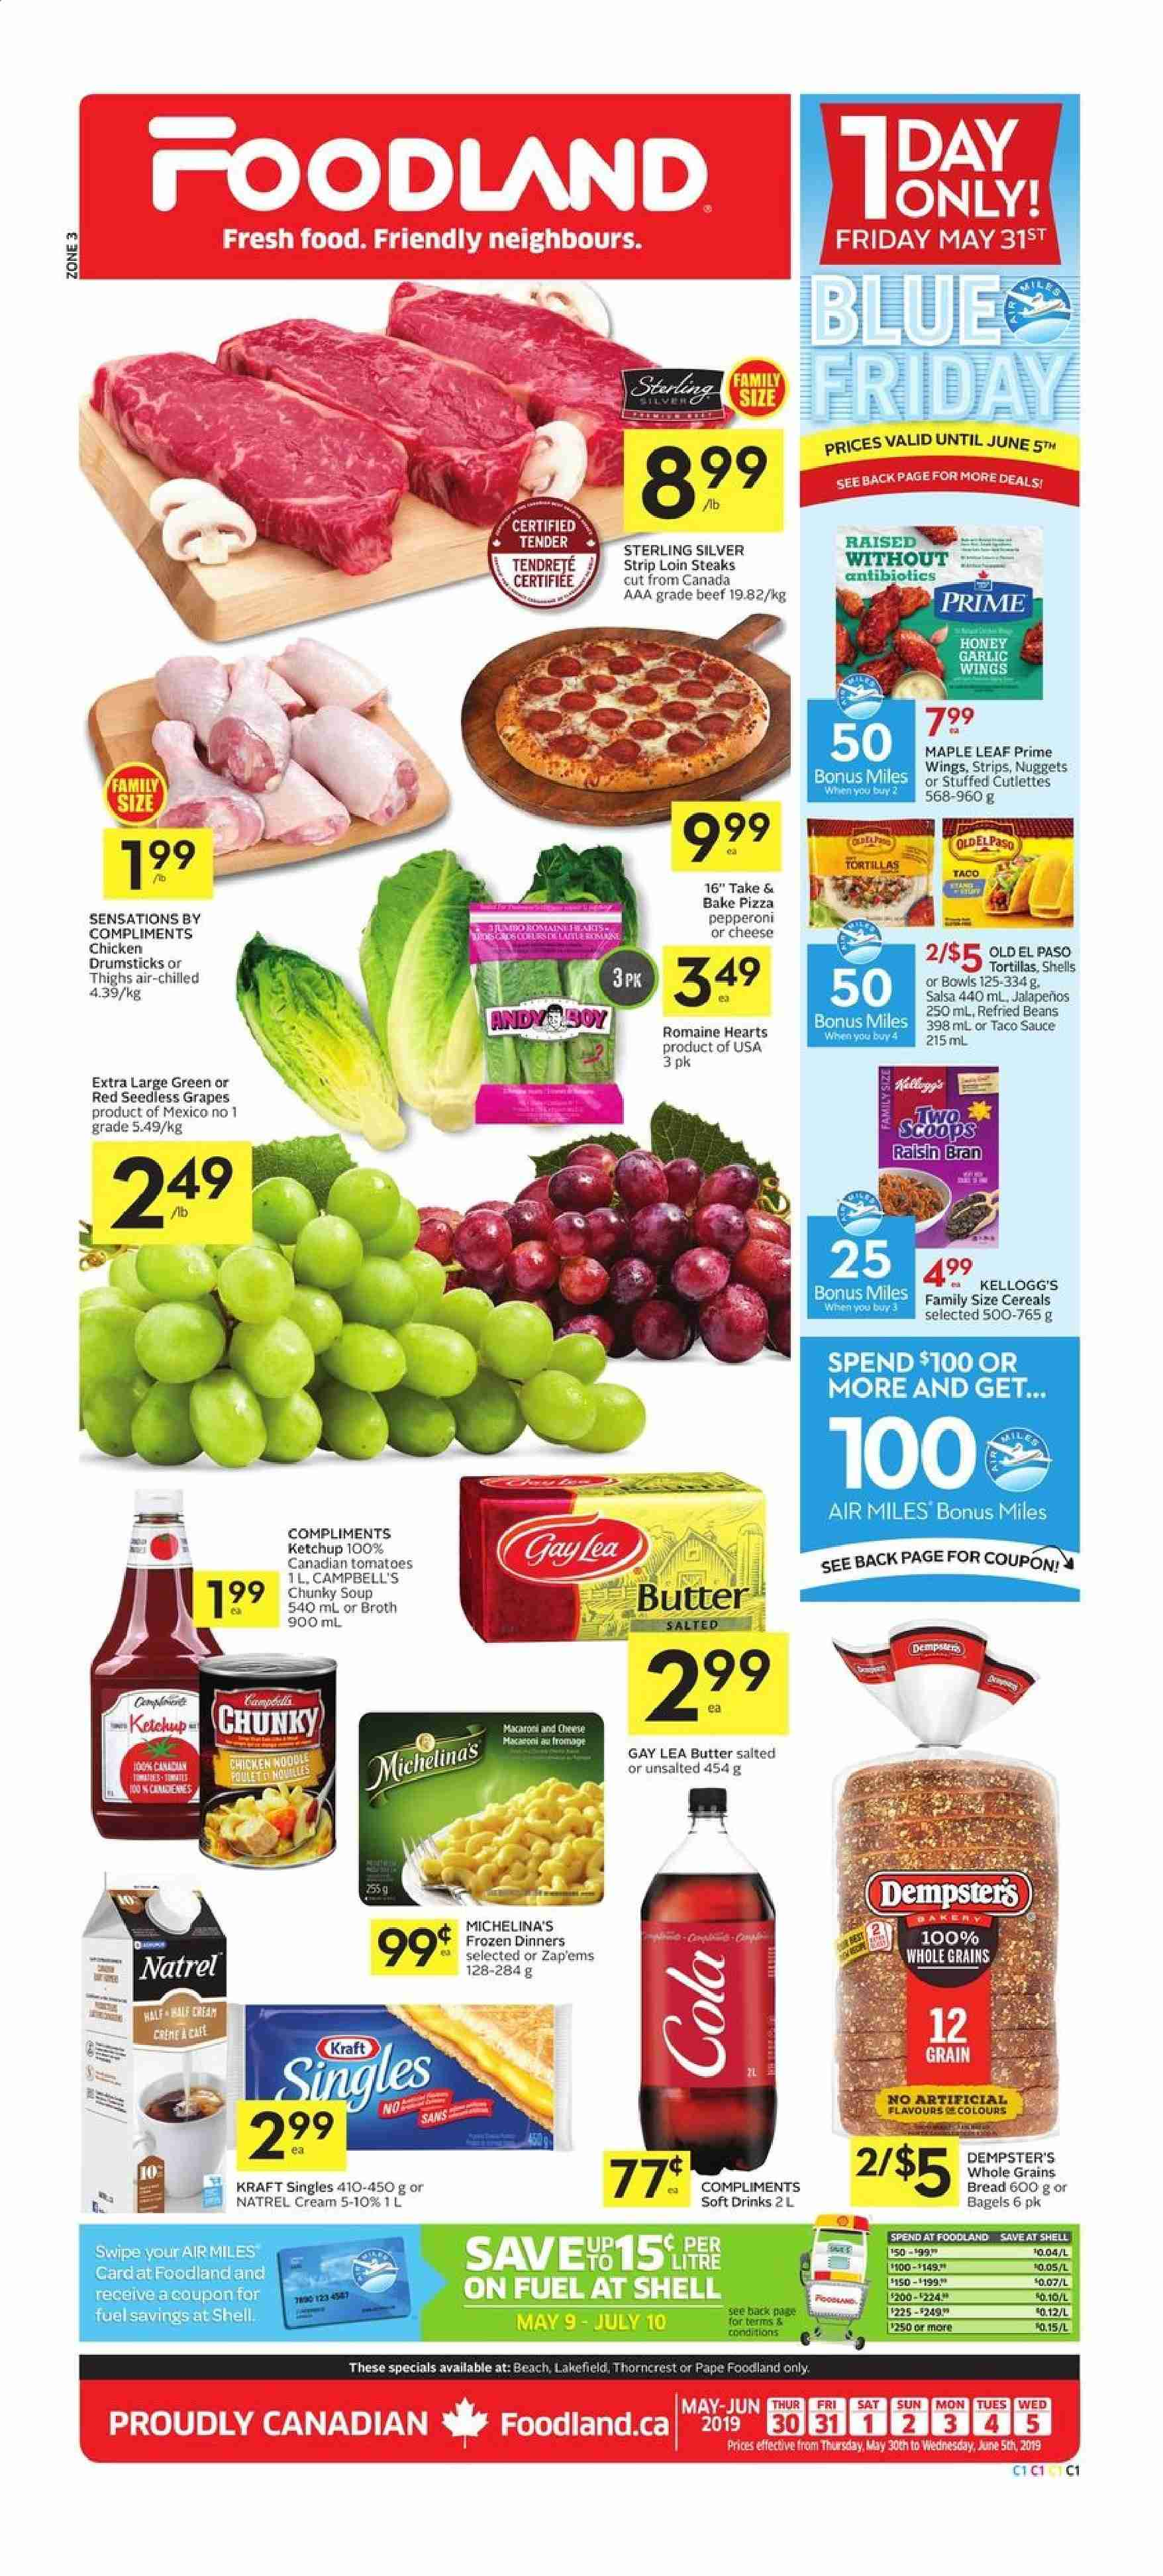 Foodland Flyer  - May 30, 2019 - June 05, 2019. Page 1.